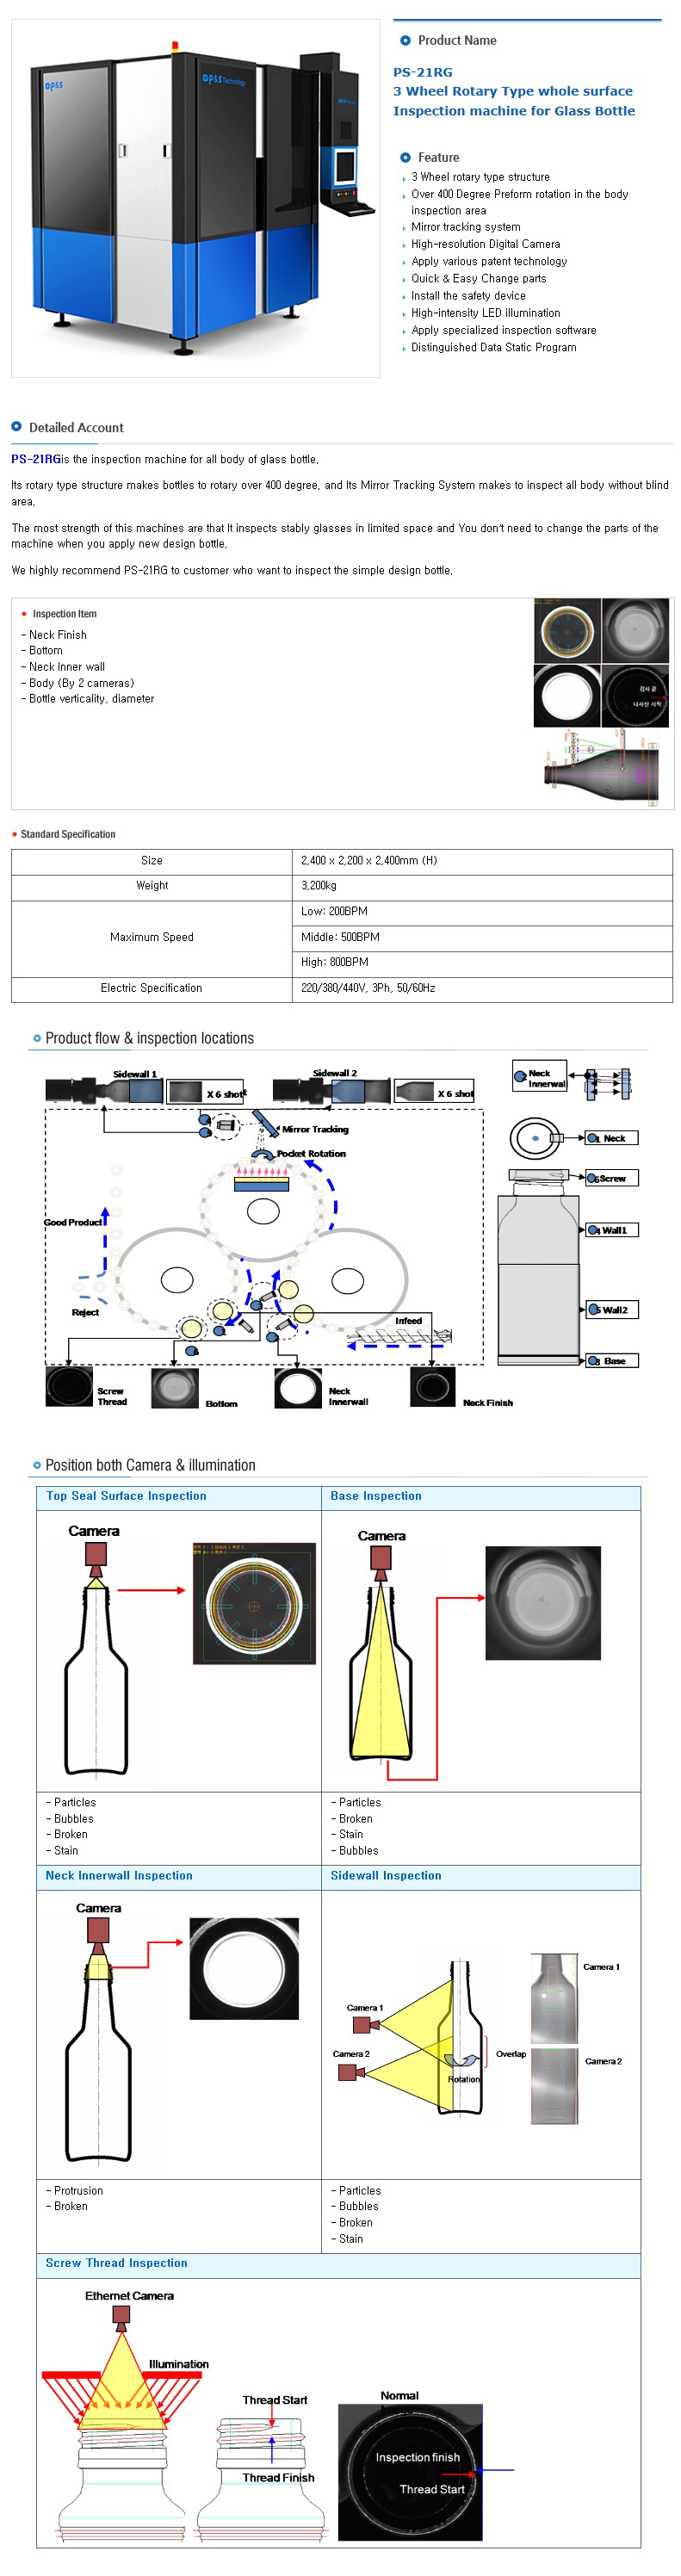 P&S TECHNOLOGY 3 Wheel Rotary Type whole surface Inspection machine for Glass Bottle PS-21RG